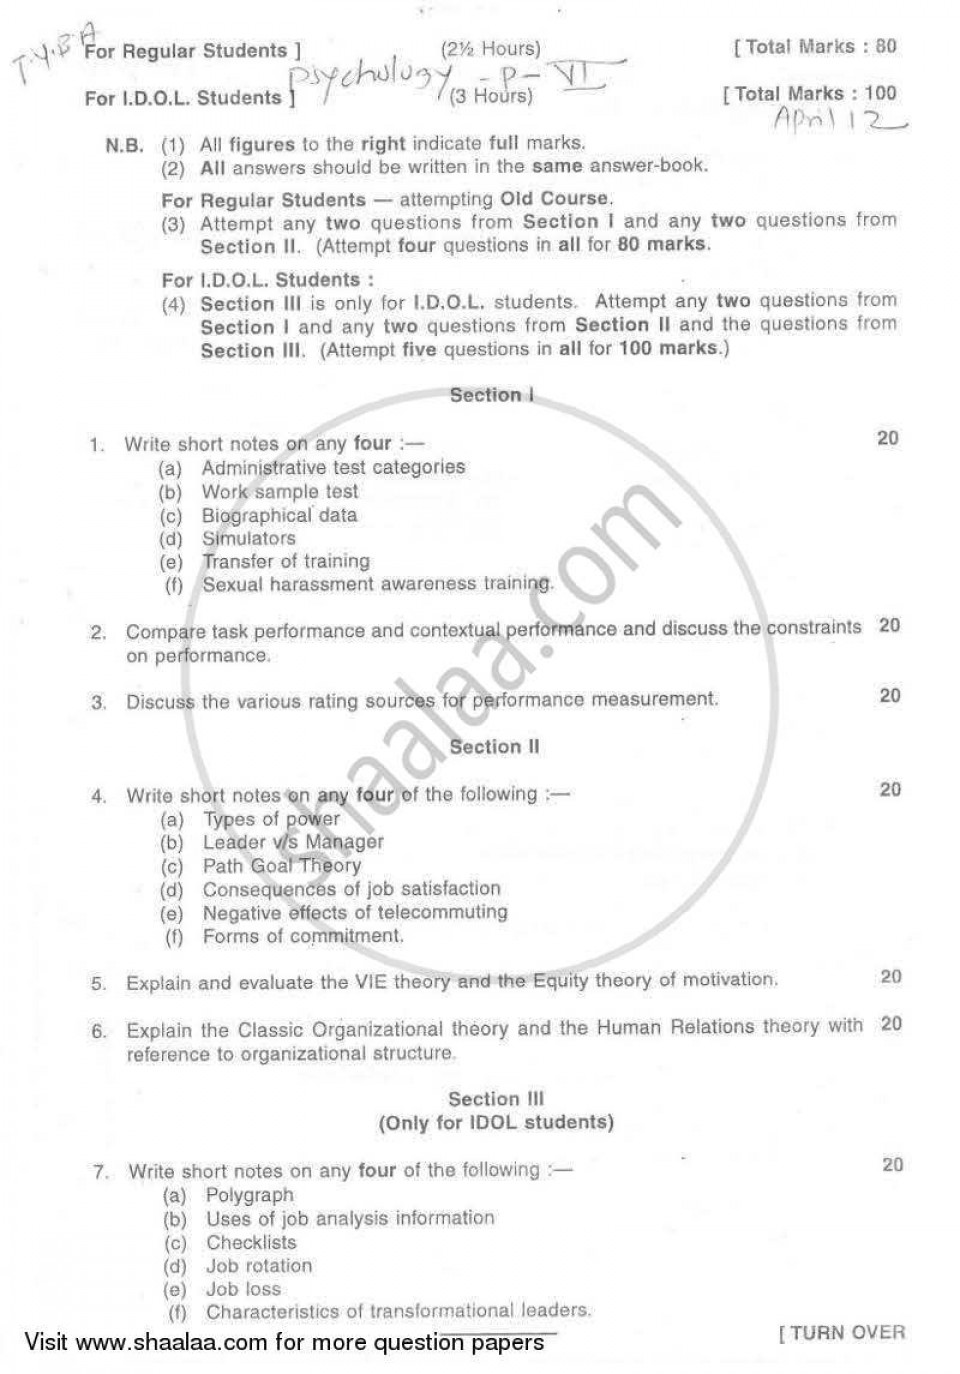 017 Psychologyearch Paper On Dreams University Of Mumbai Bachelor Industrial Organizational T Y Yearly Pattern Semester Tyba 2011 29a03925dfc524f2aa4cb10e4d3da996a Singular Psychology Research Articles News 960